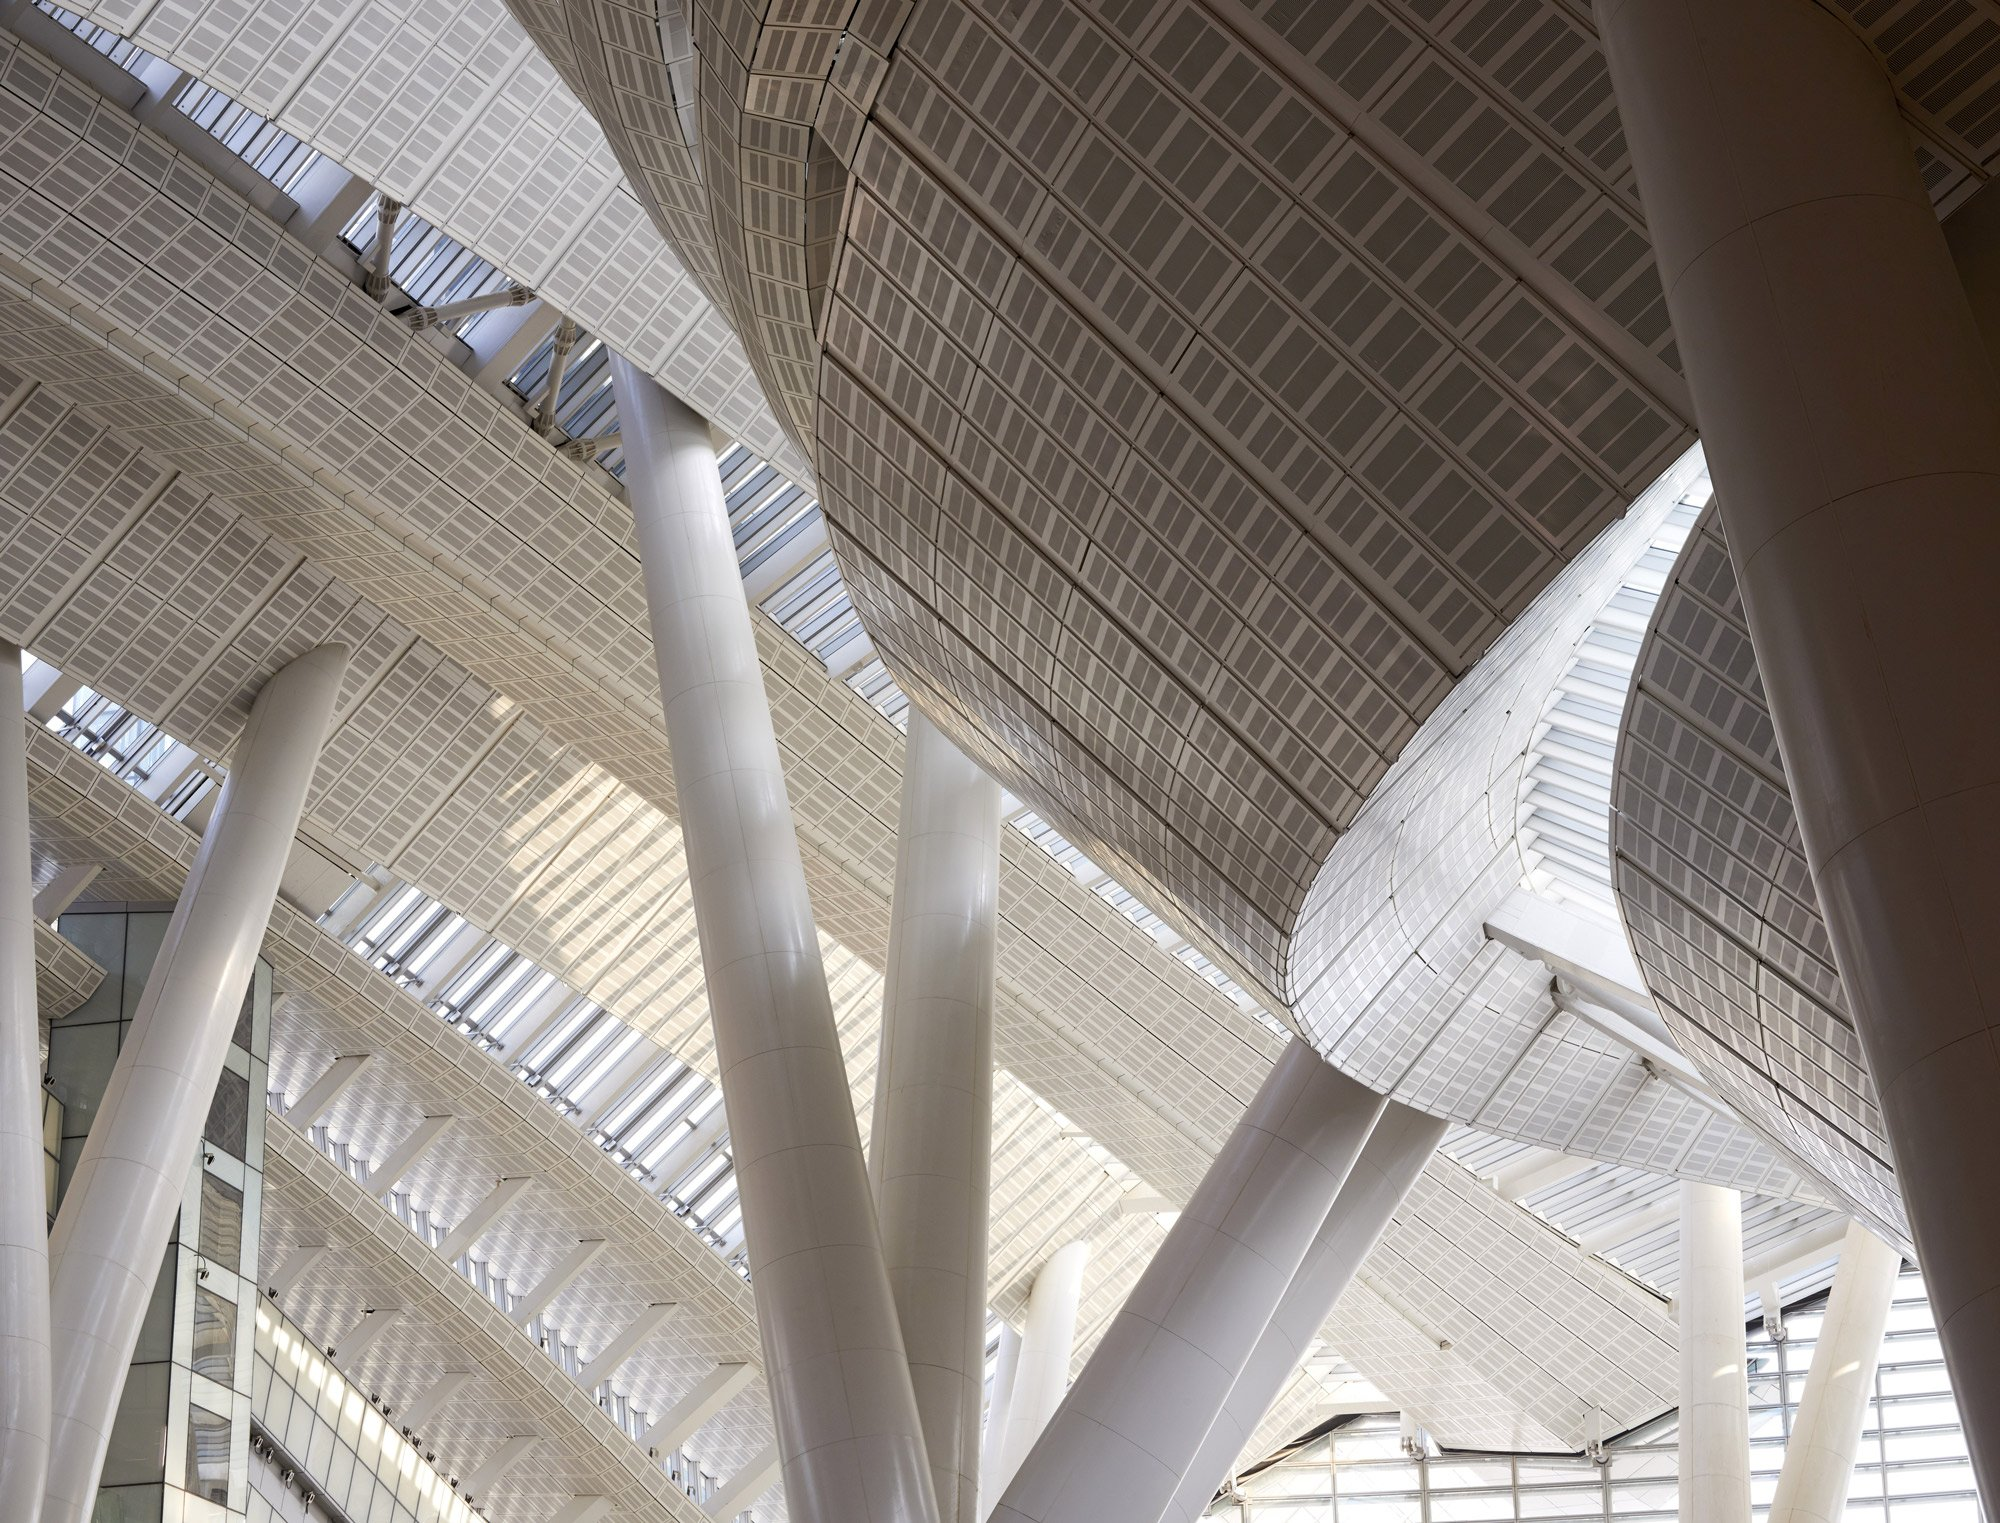 West Kowloon Station in Hong Kong